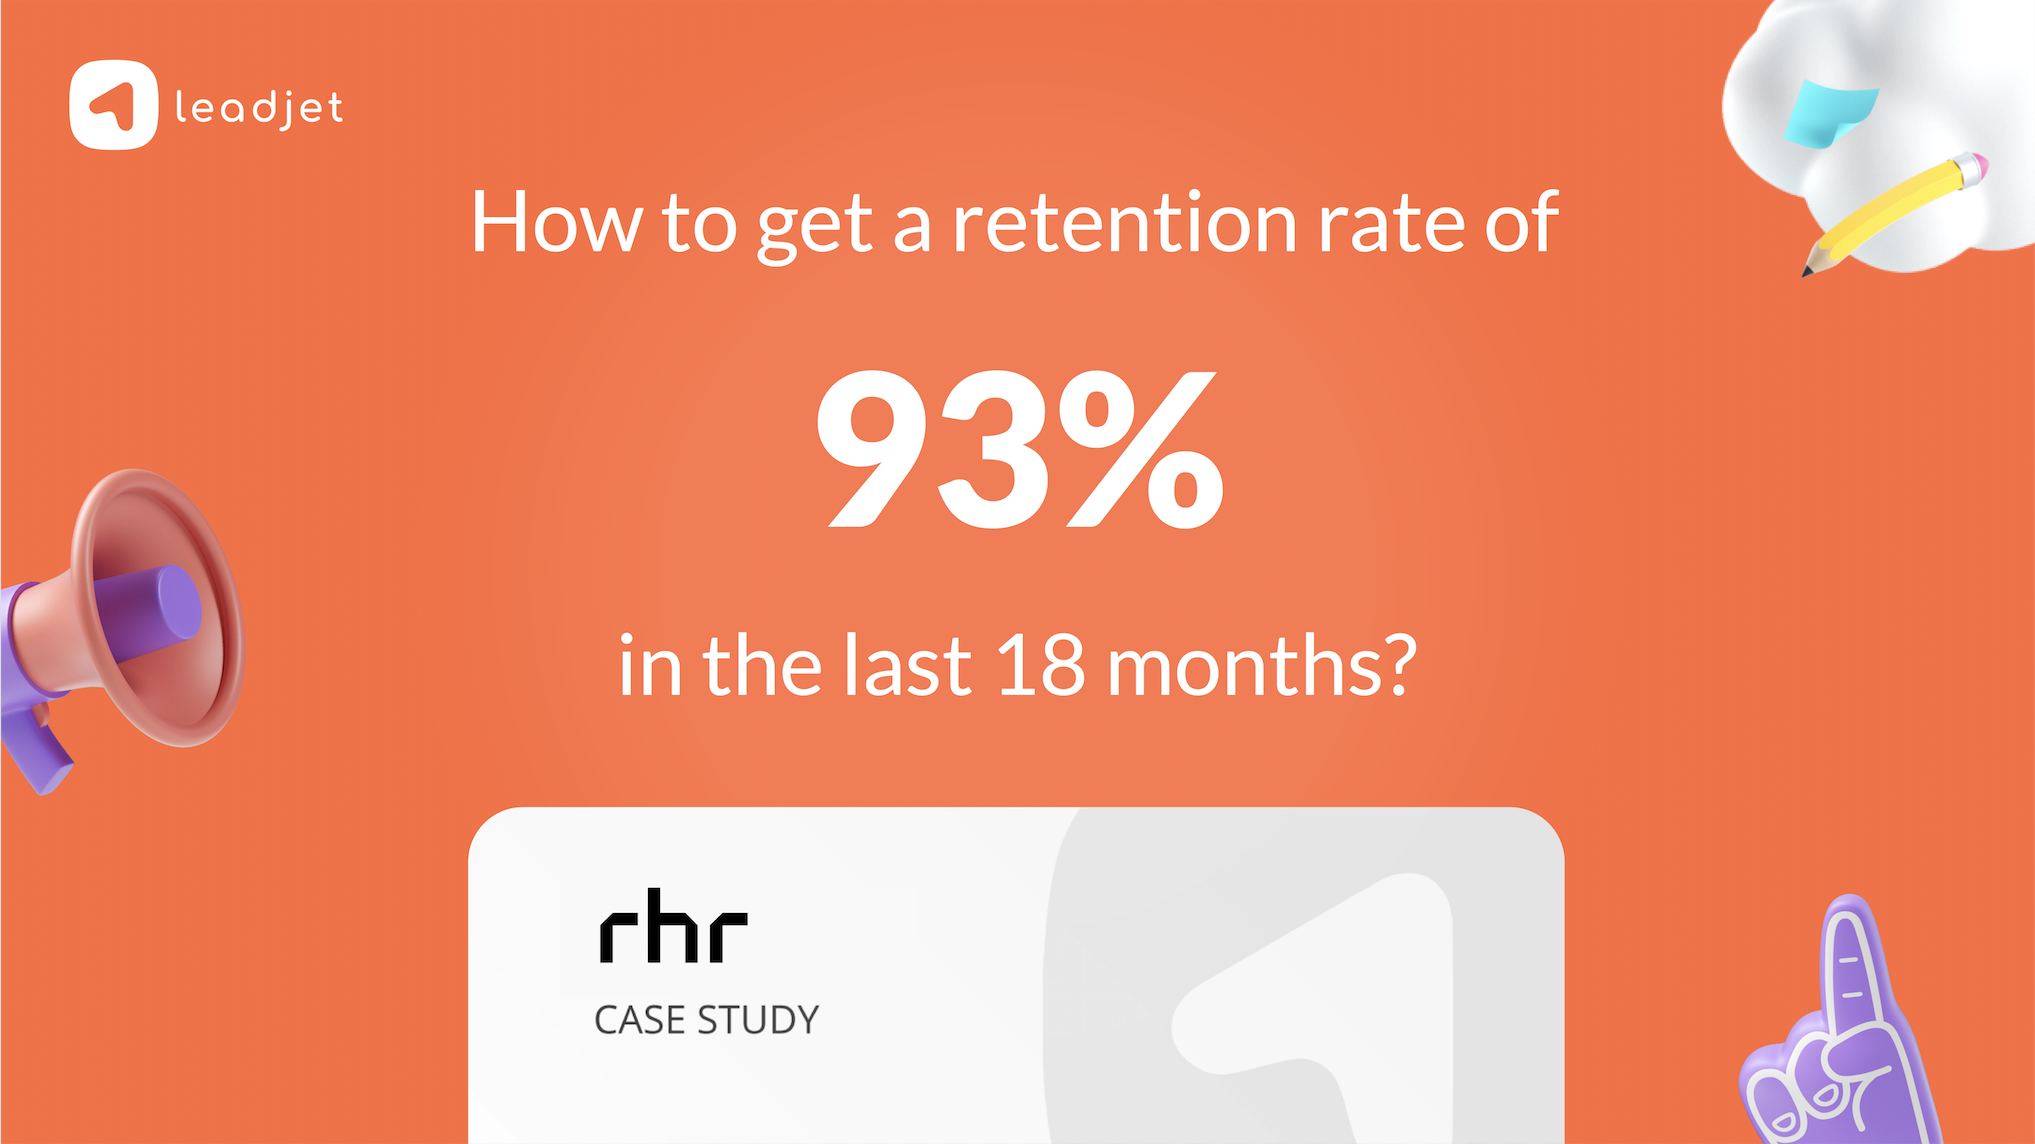 How Leadjet helped RHR to get 93% retention rate